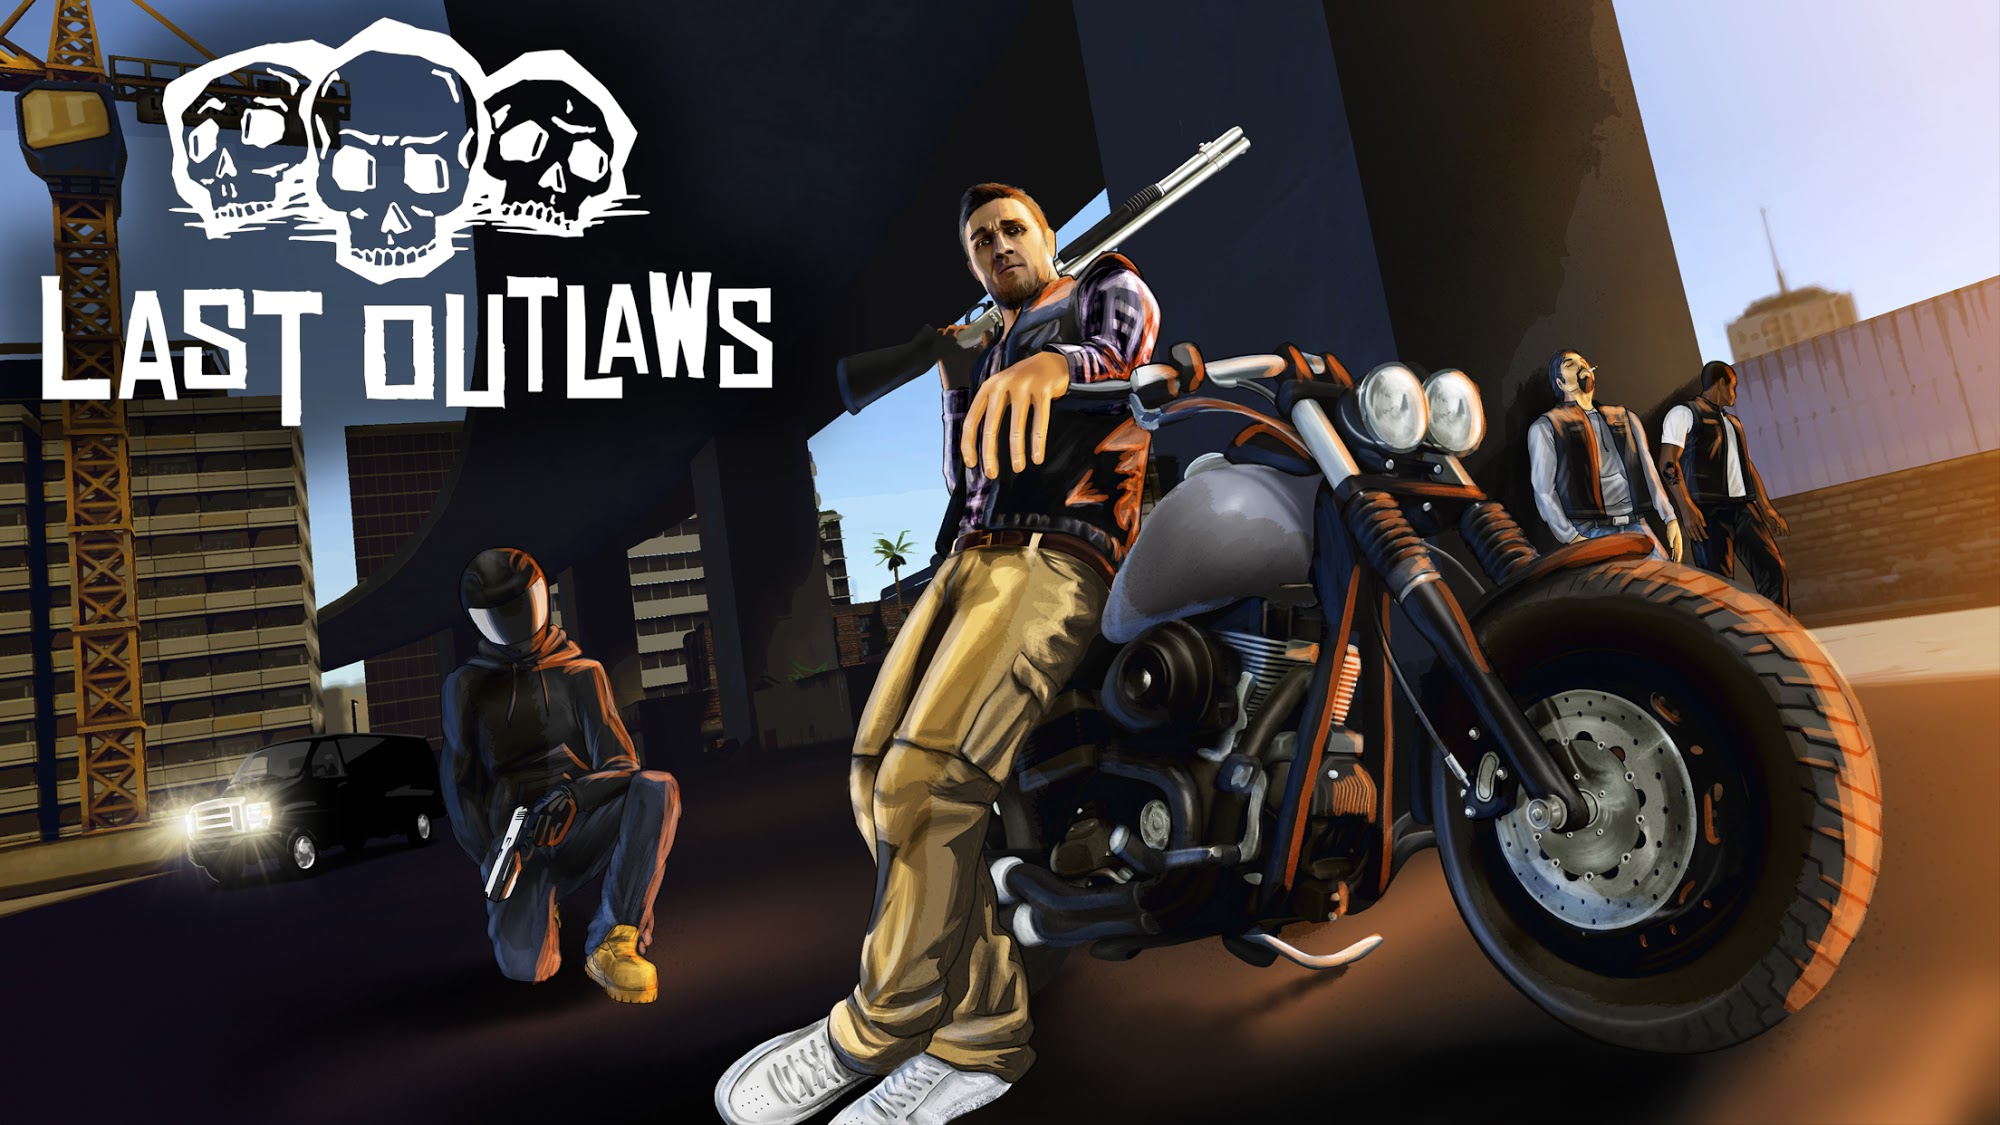 Last Outlaws: The Outlaw Biker Strategy Game captura de tela 1